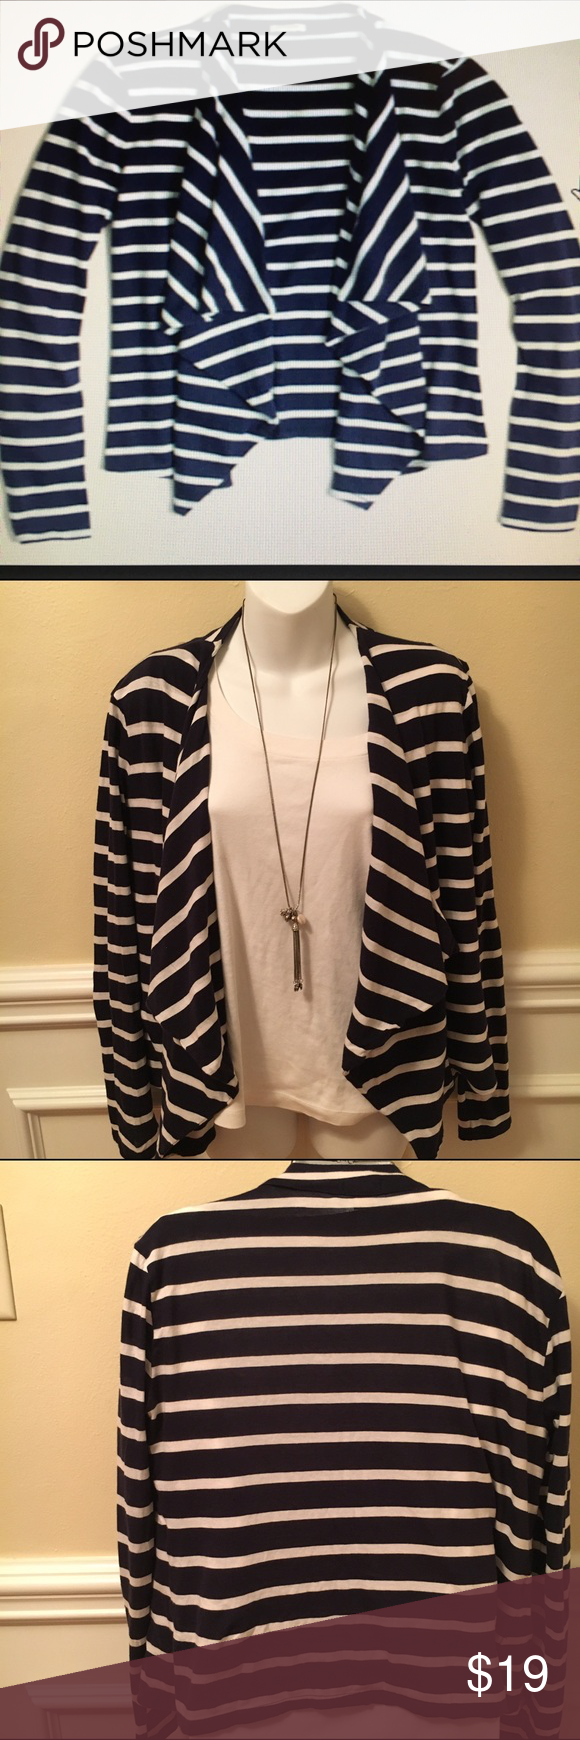 J.Crew size S navy/white striped cardigan JCrew nautical ...